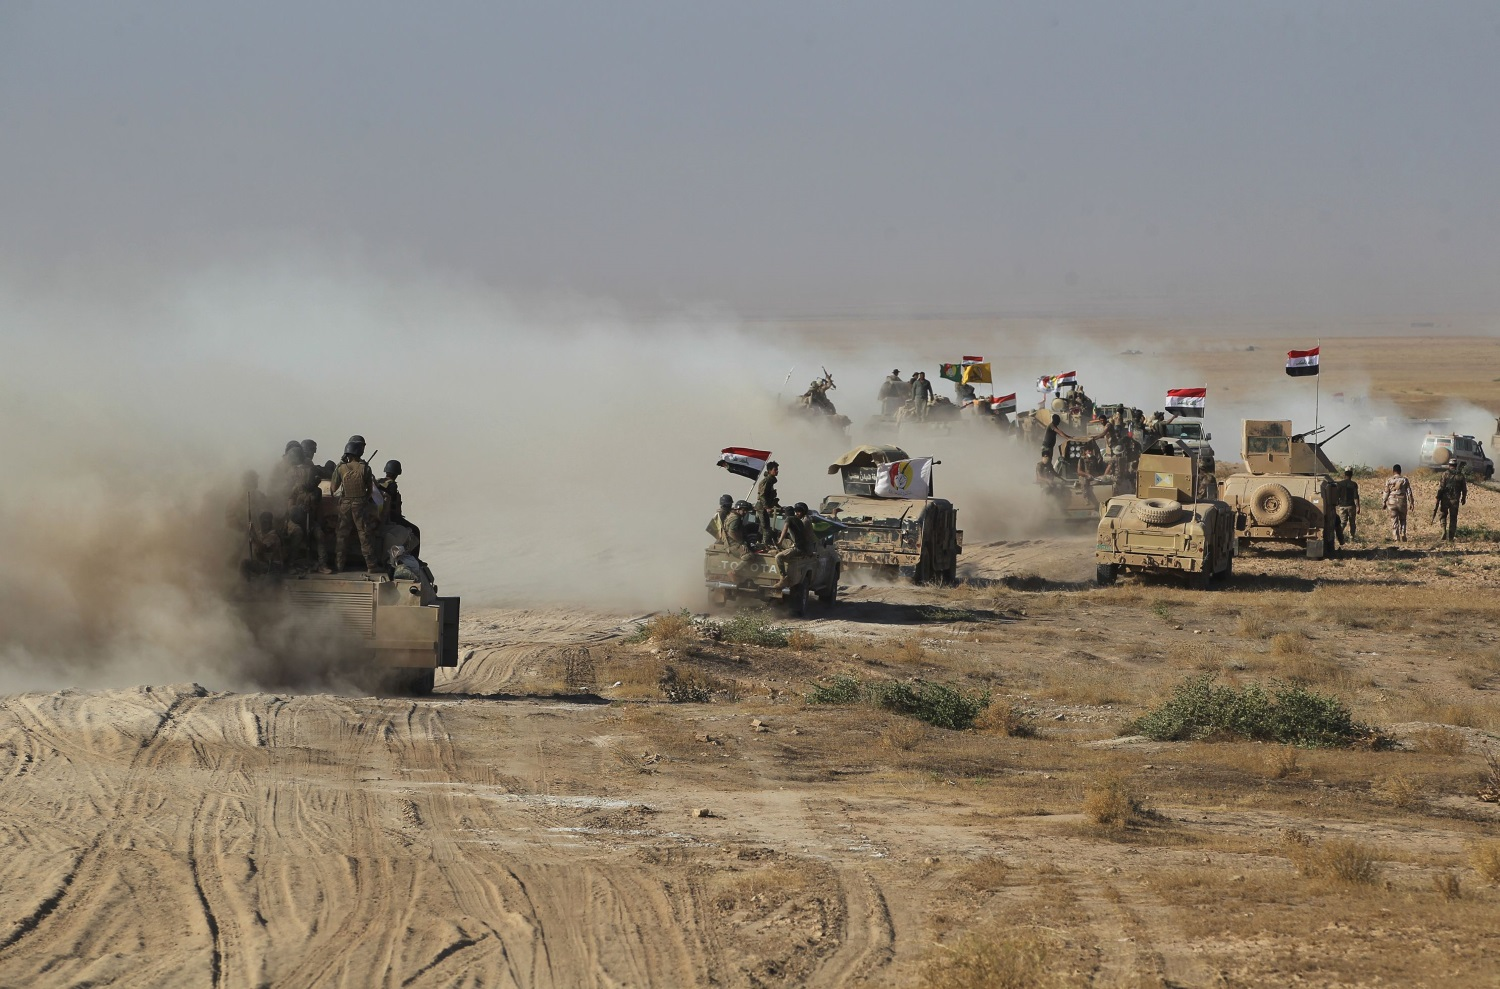 Iraqi forces backed by the Hashed Al-Shaabi (Popular Mobilization units) advance towards the town of Tal Afar, west of Mosul, after the Iraqi government announced the beginning of the operation to retake it from the control of the Islamic State group on Aug. 22, 2017. (Ahmad Al-Rubaye/ AFP via Getty Images)